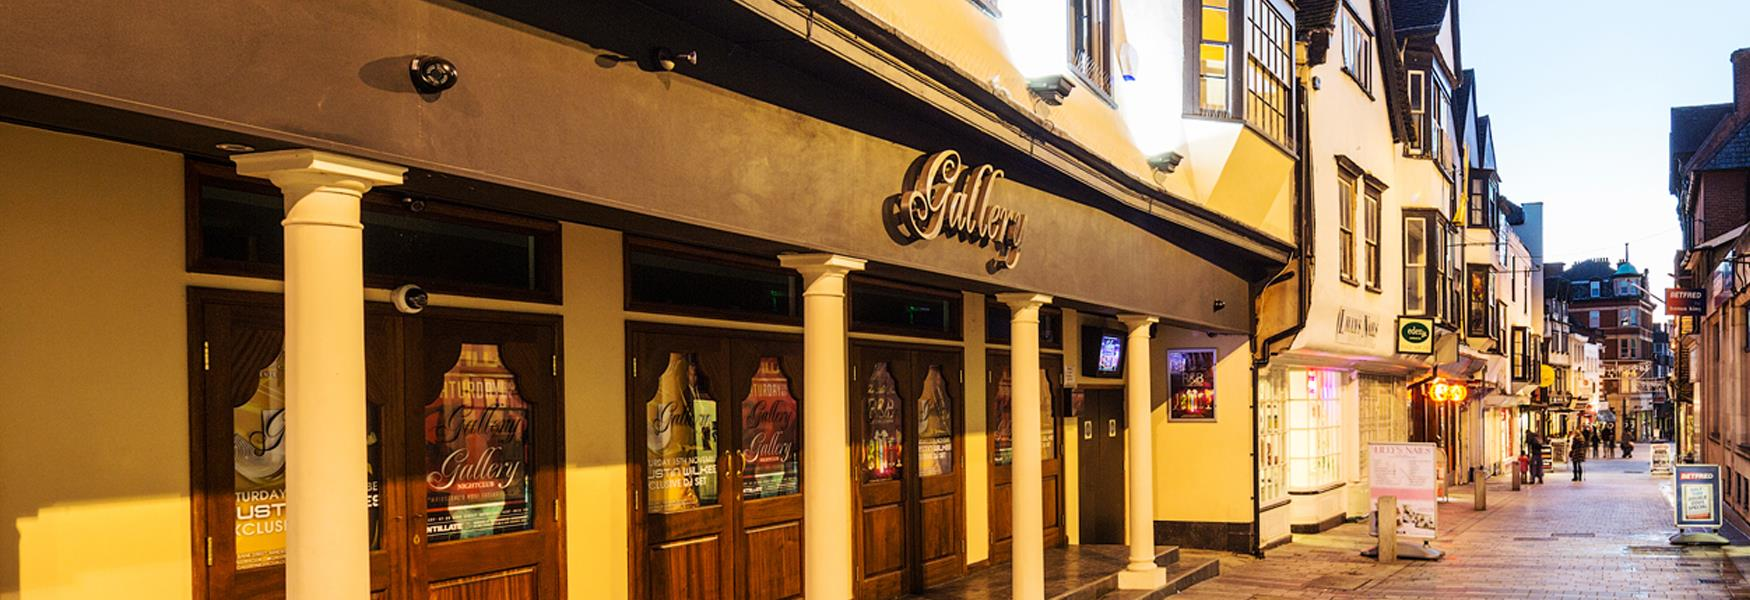 Gallery Nightclub is housed in a Grade II listed building